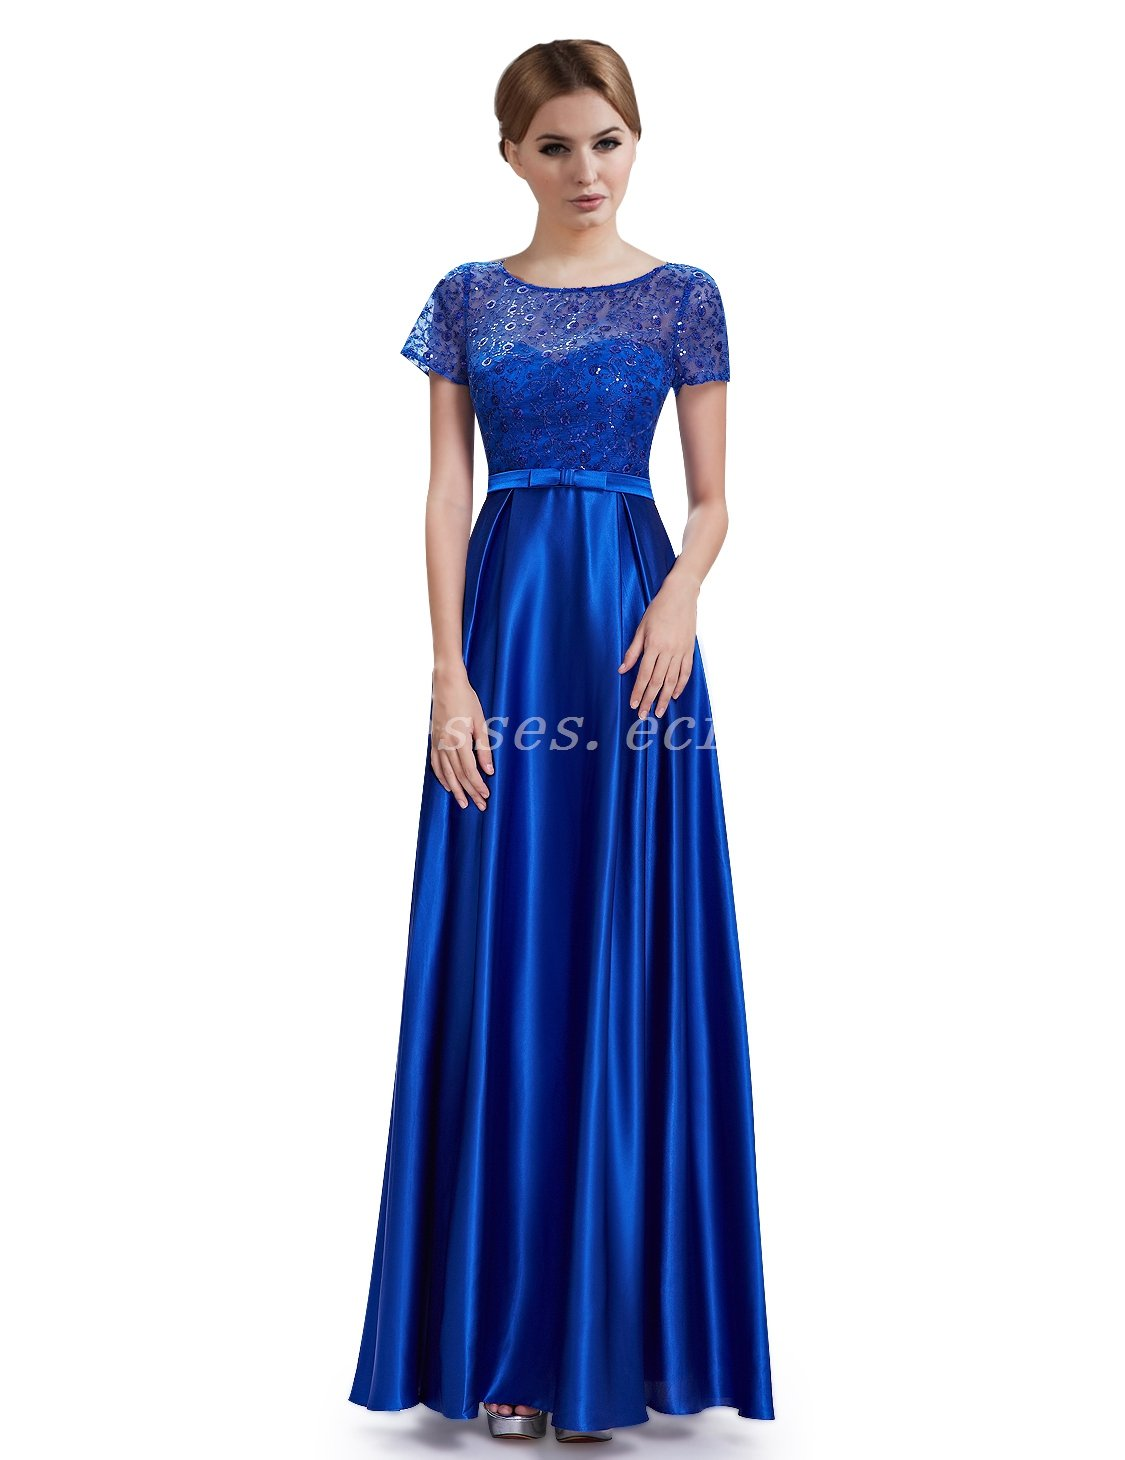 Short Sleeves Column Full Length Royal Blue Mother Of The Bride Dress With Lace